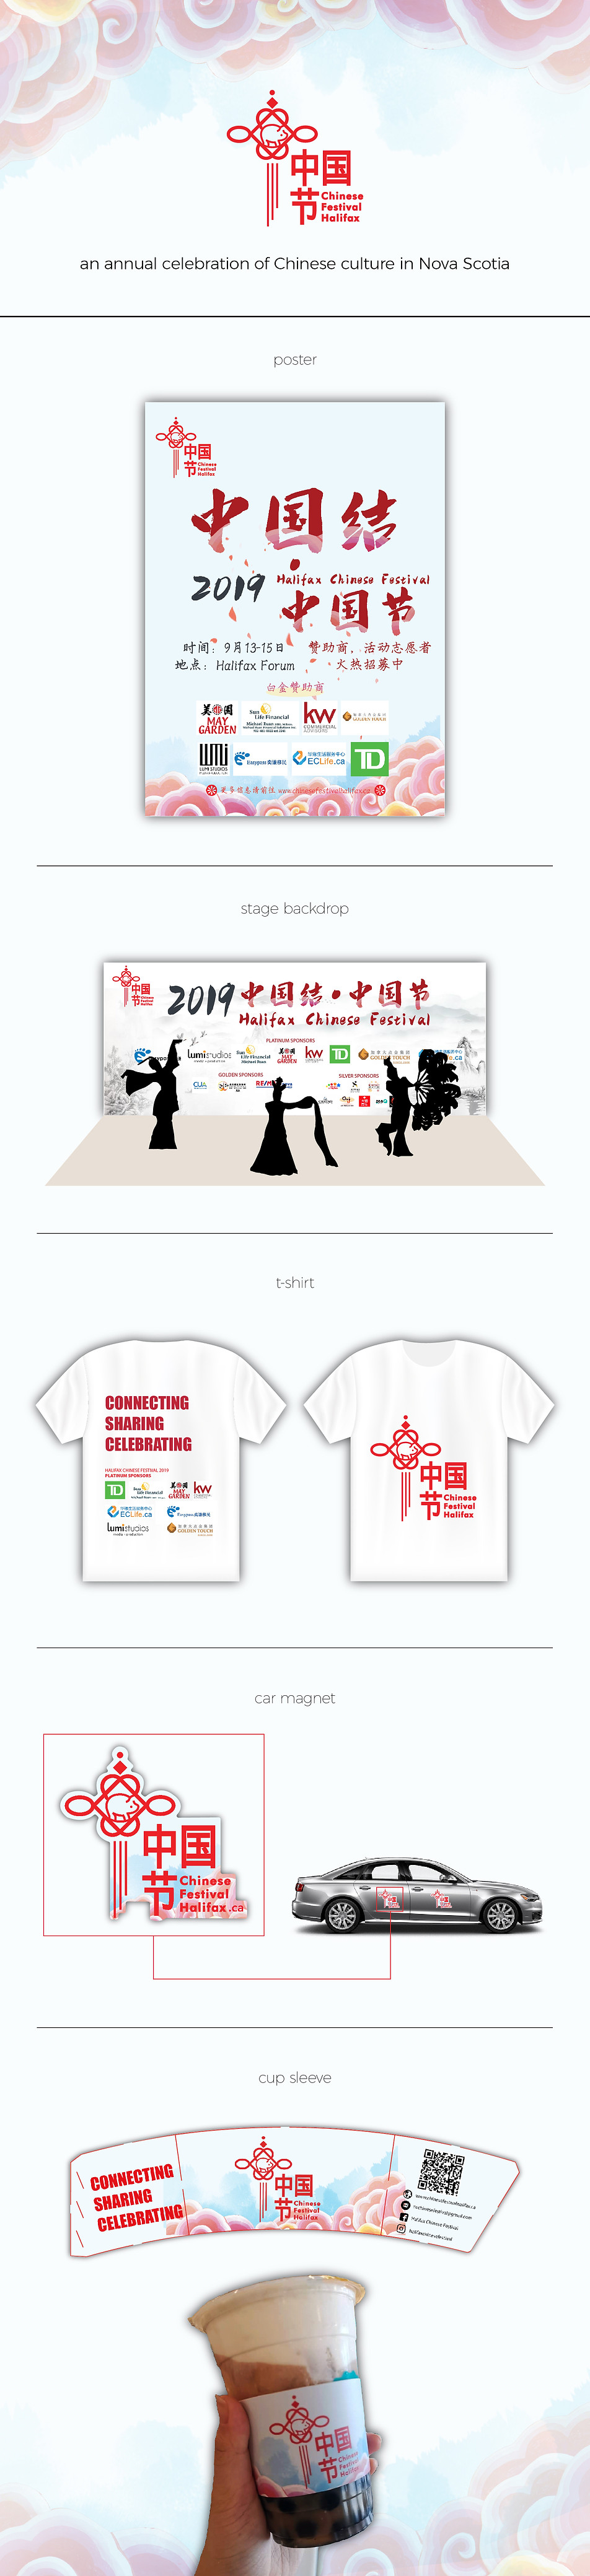 Chinese Festival 2019 Page-newer-01.jpg